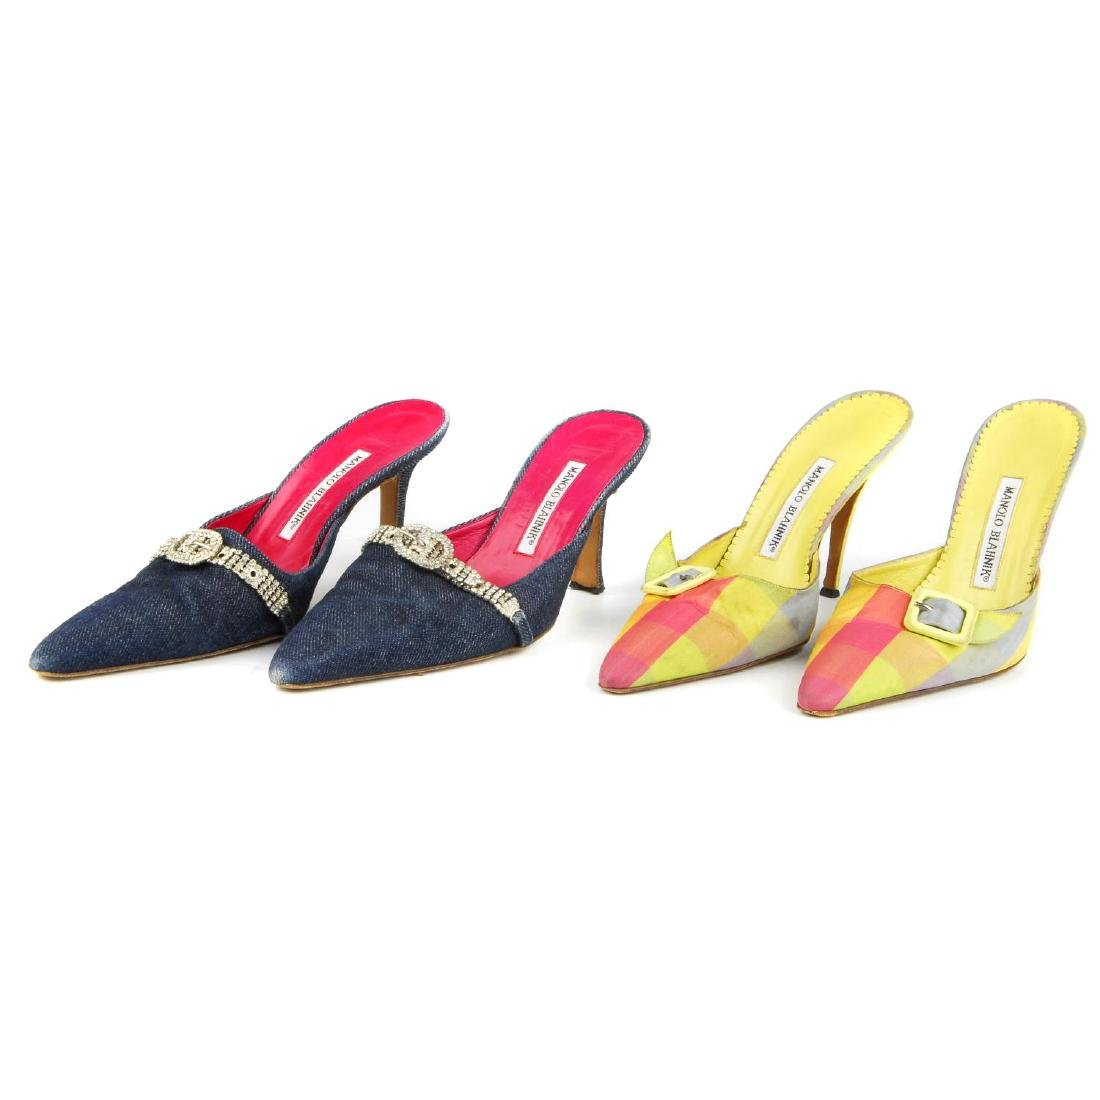 Eight pairs of women's designer shoes. To include three